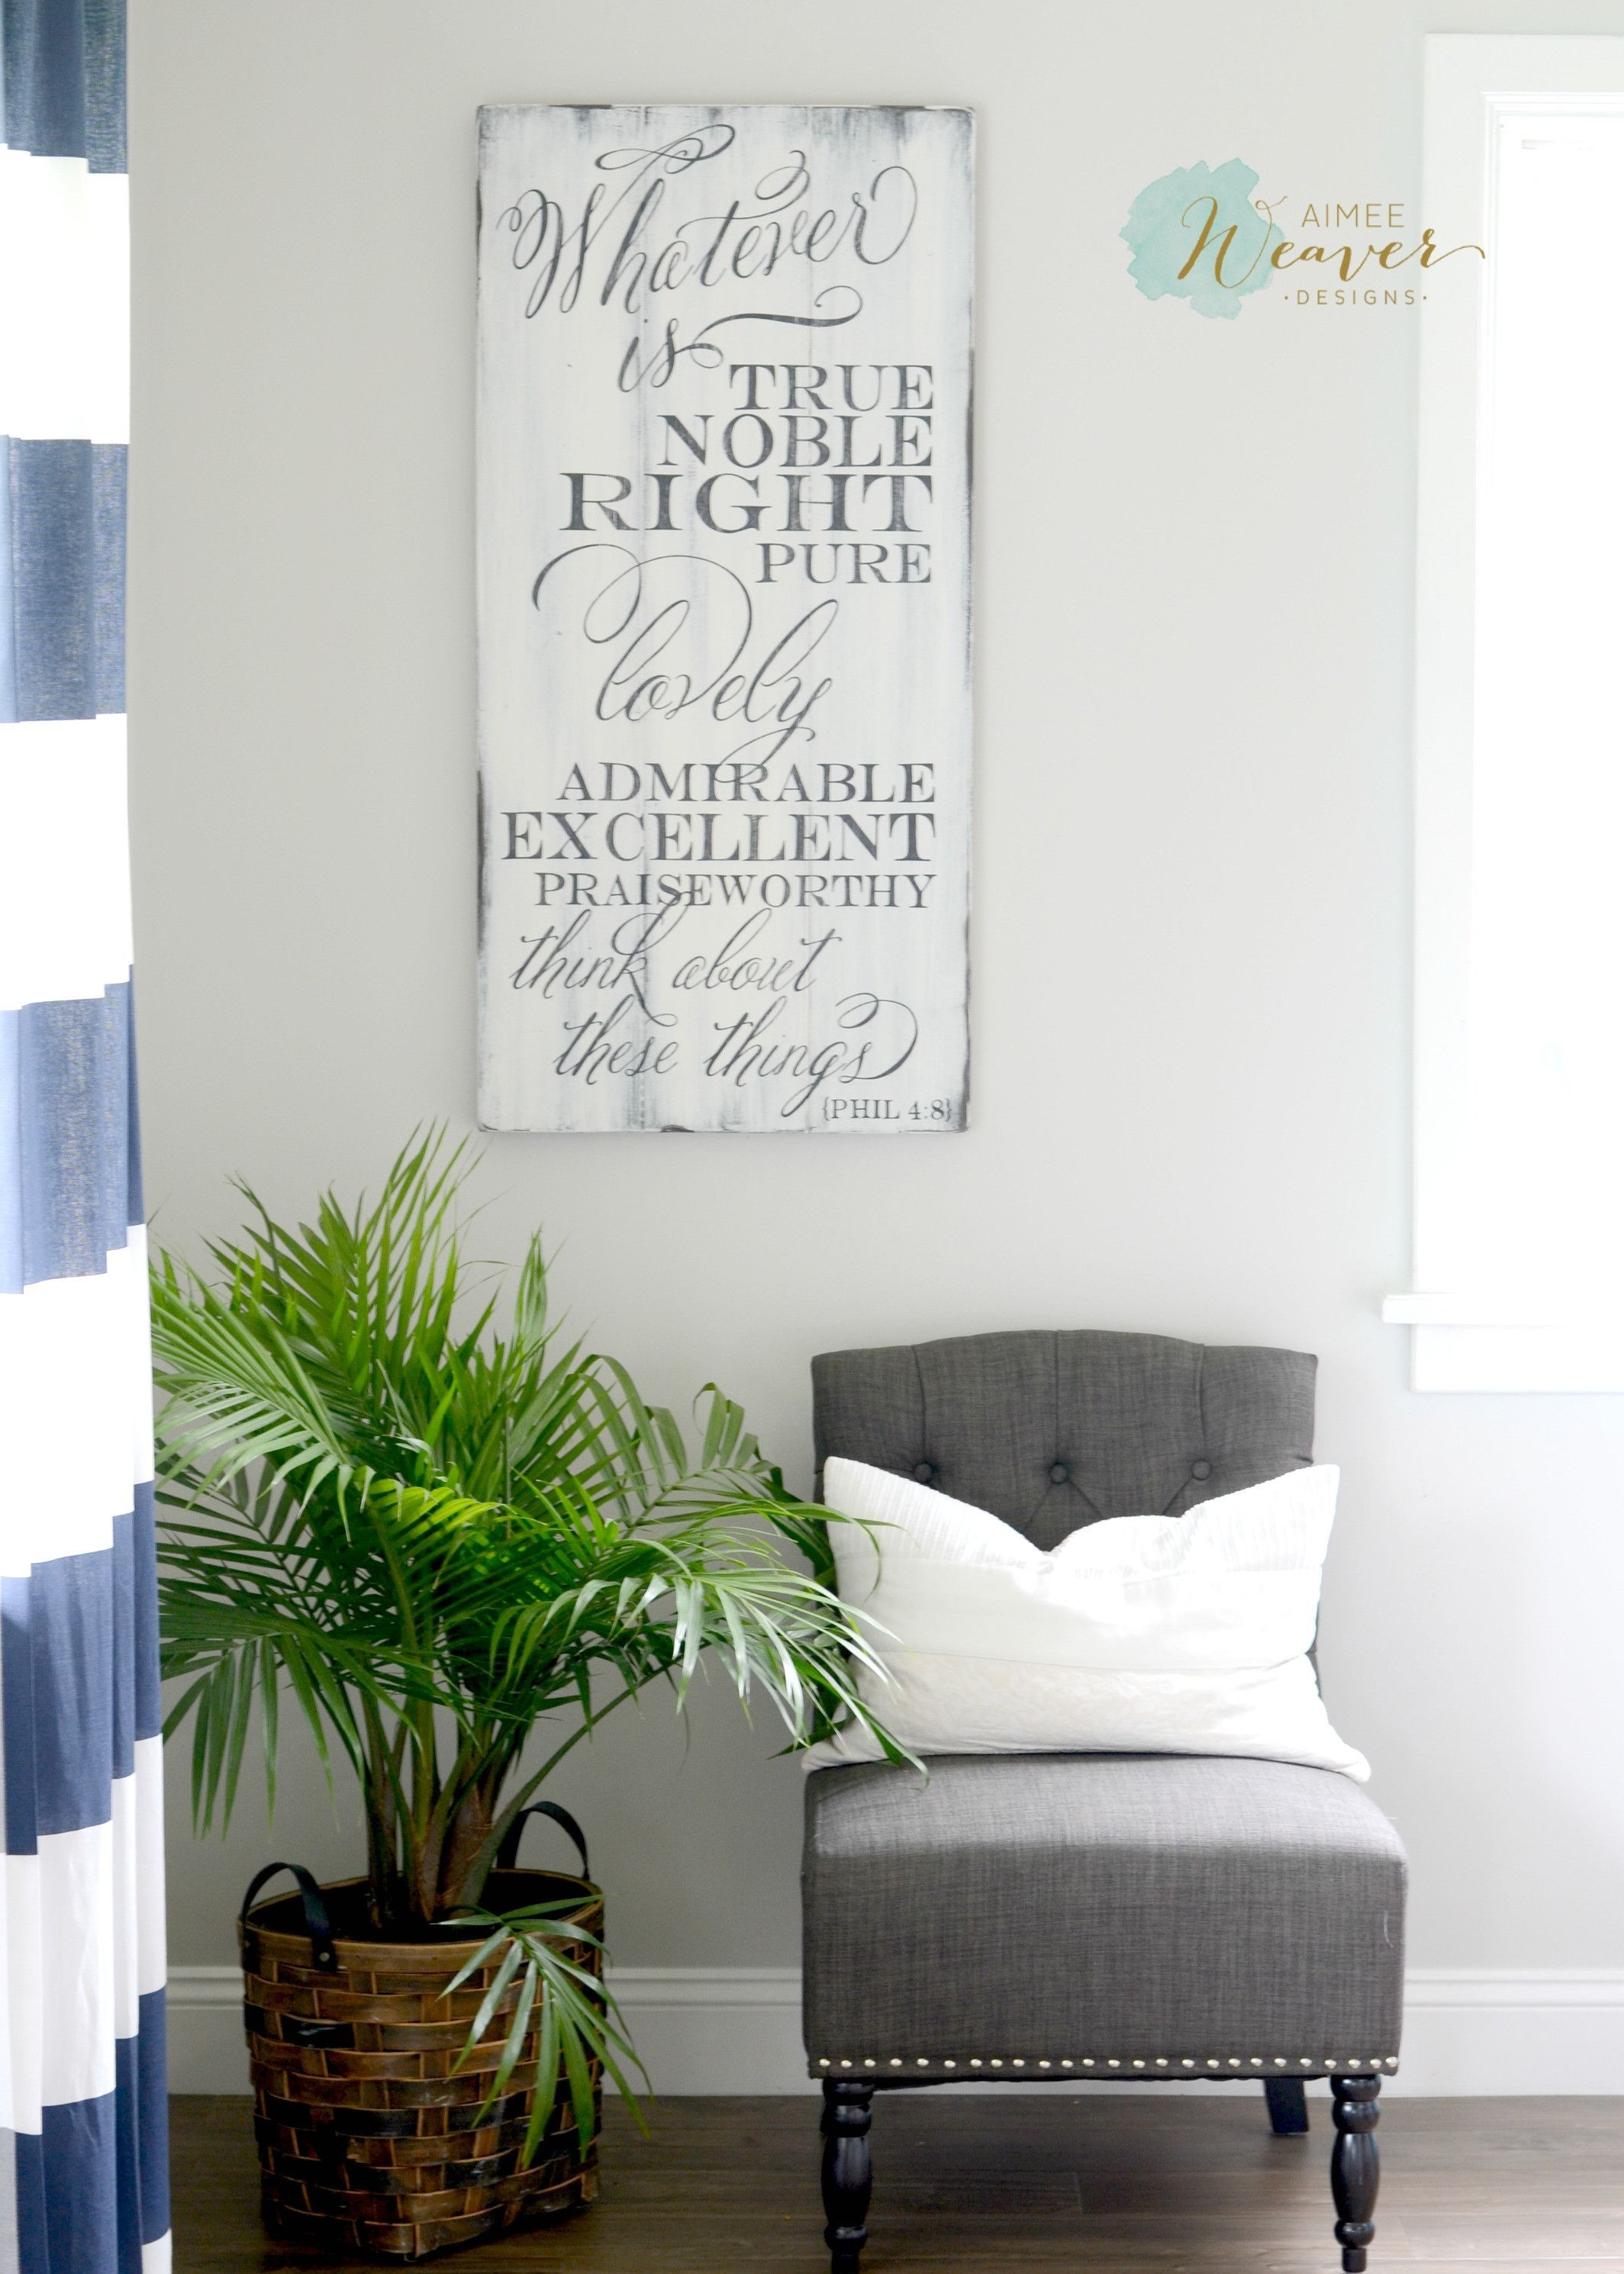 Whatever Is True Noble Right Pure Lovely Admirable Excellent Praiseworthy Think About These Things Diy Home Decor Projects Crafty Decor Wood Artwork